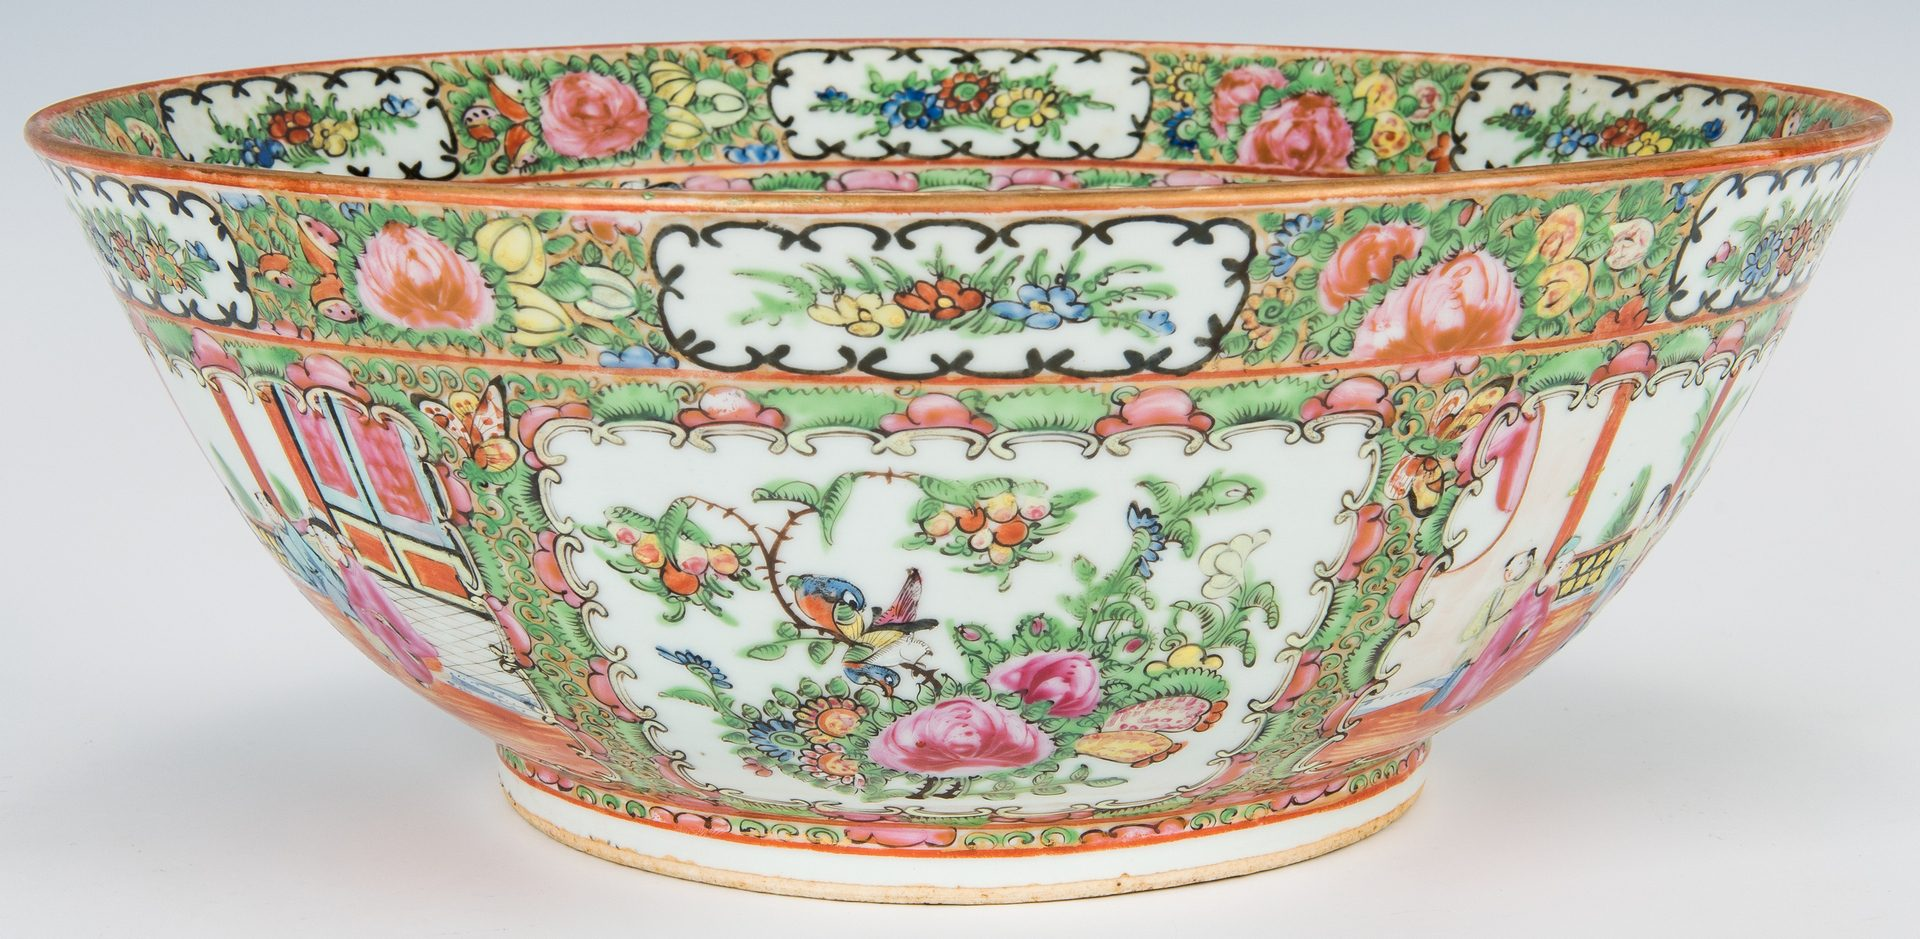 Lot 26: 5 Pcs. Chinese Export Porcelain, incl. Punch Bowl